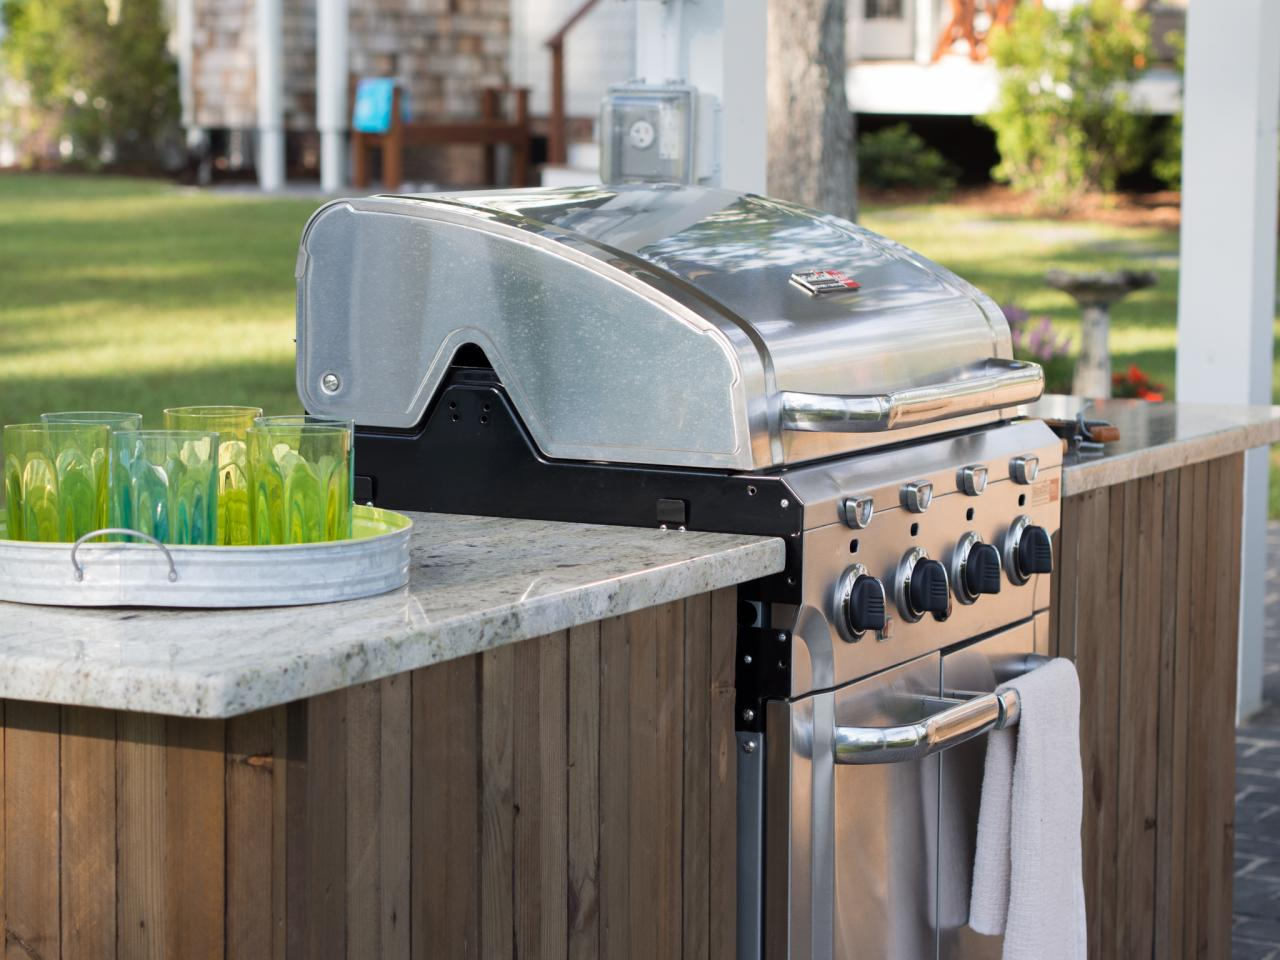 Superb Build Your Own Outdoor Kitchen Island #1: How To Build A Grilling Island. Create An Outdoor Kitchen ...